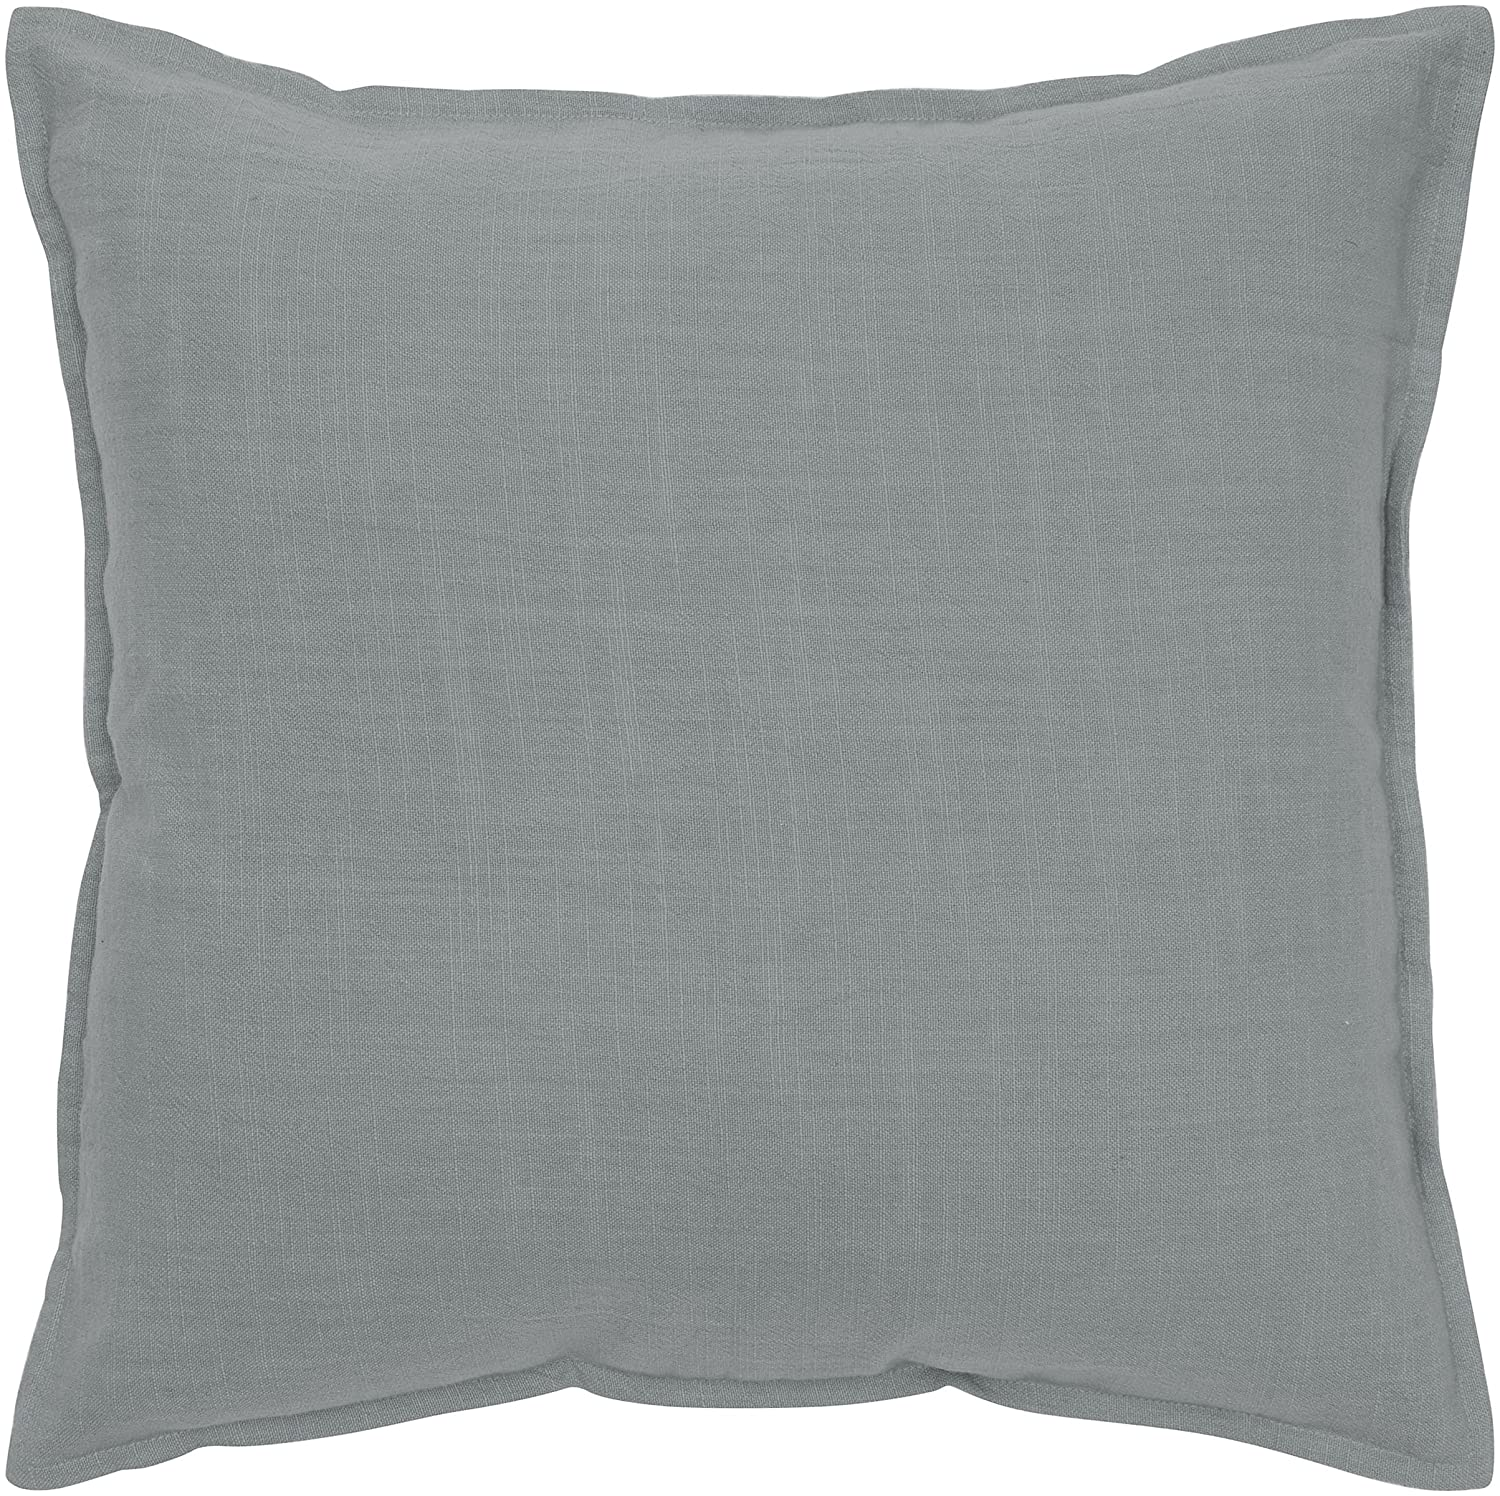 Rizzy Home T03427 Decorative Solid Poly Filled Throw Pillow 20 x 20 Brown T-3427